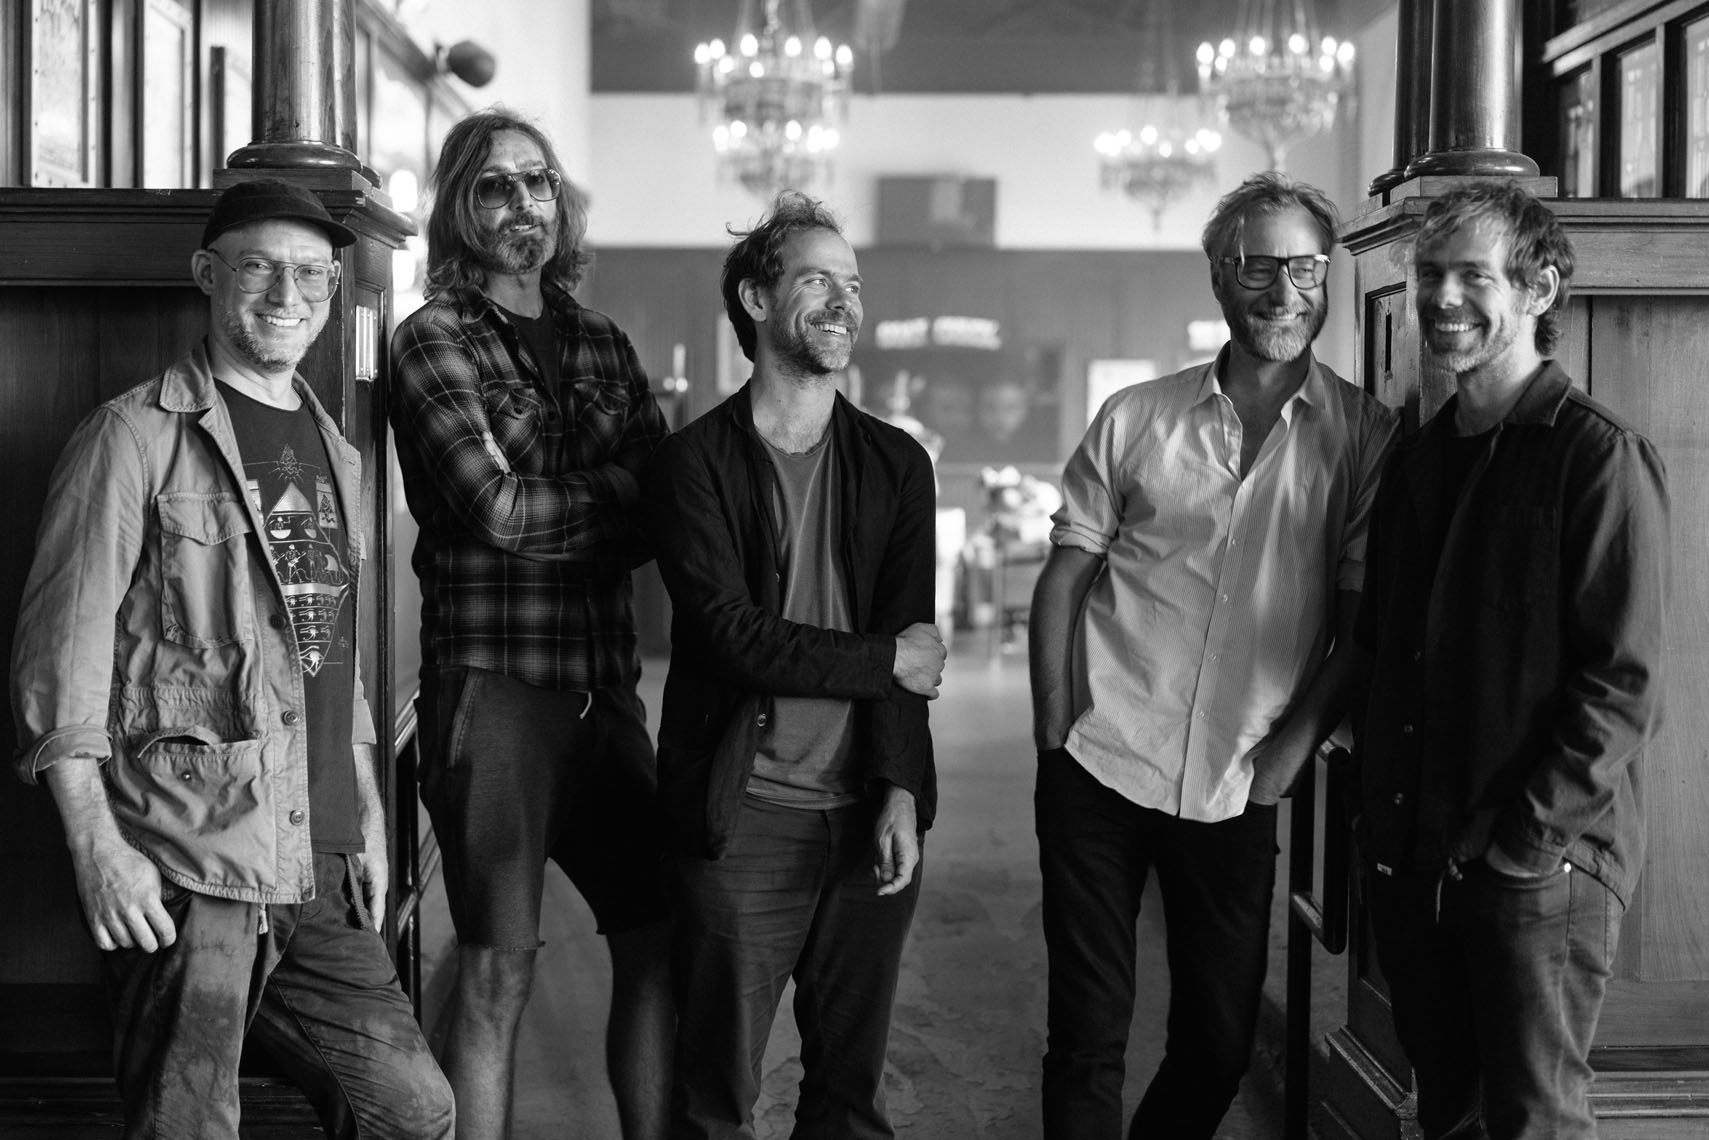 Matt Berninger, Aaron Dessner, Bryce Dessner, Scott Devendorf and Bryan Devendorf at Union Transfer